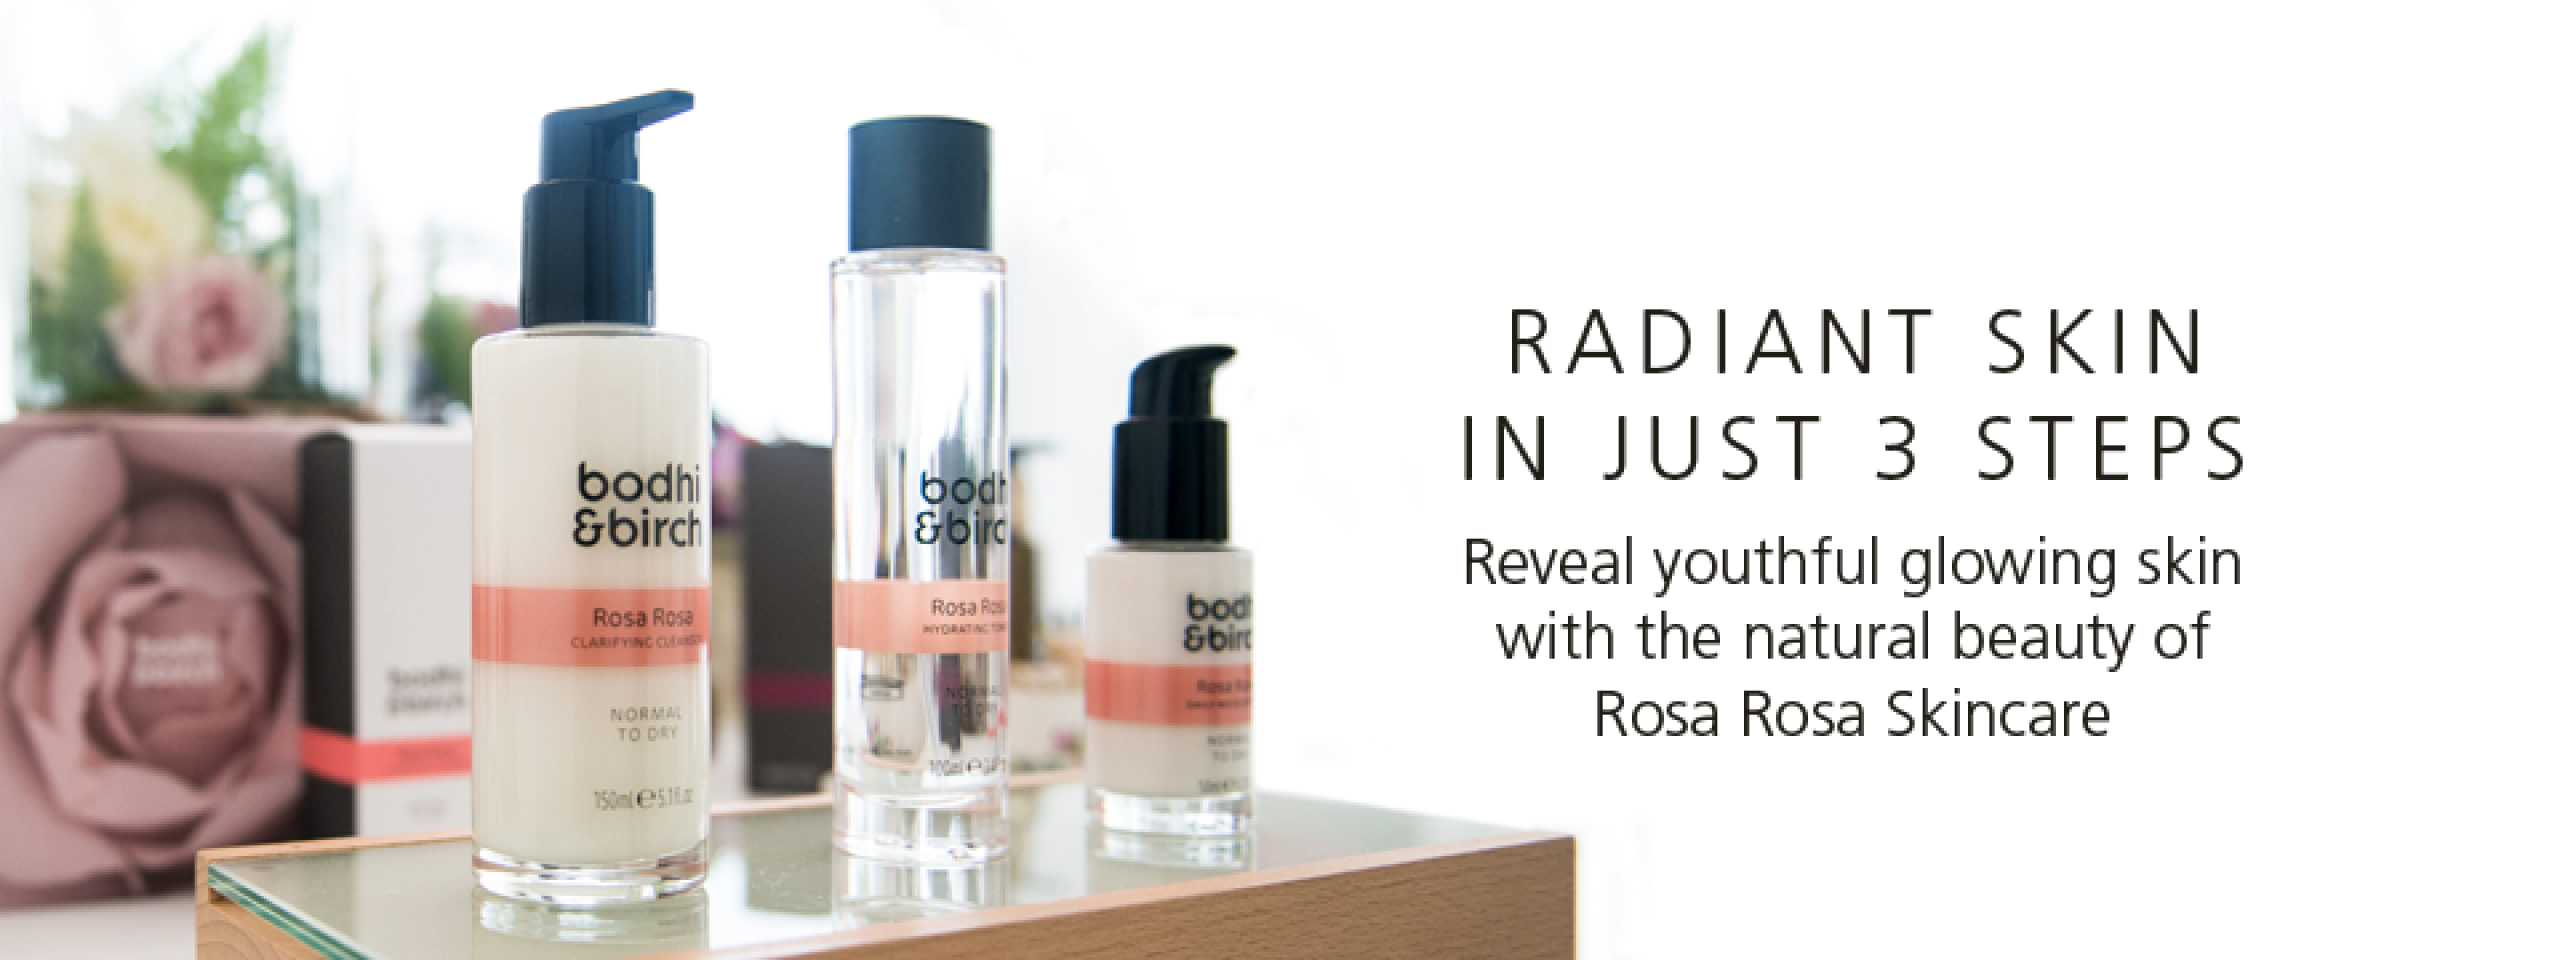 Radiant Skin in just 3 steps